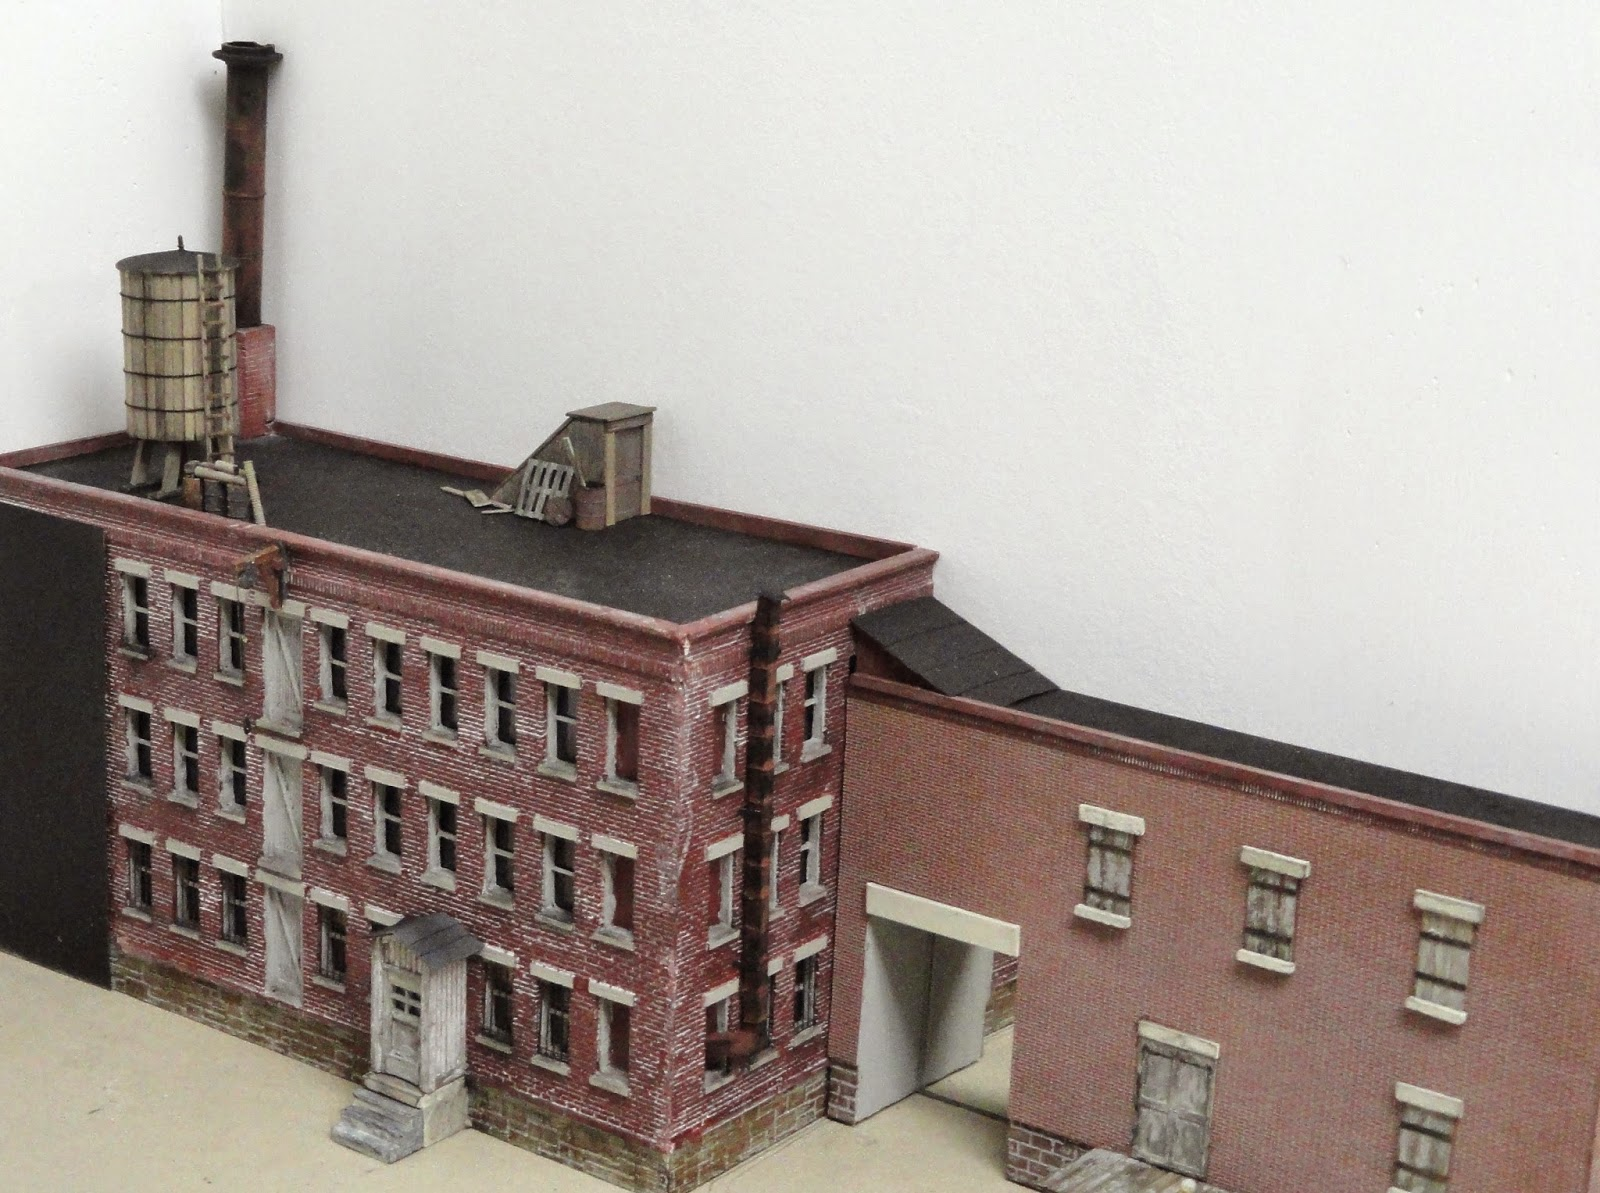 I Have Added Some Details To The Roof Of The Main Building. These Details  Include A Water Tower, A Smoke Stack, A Roof Access Door, And Some Other  Small ...